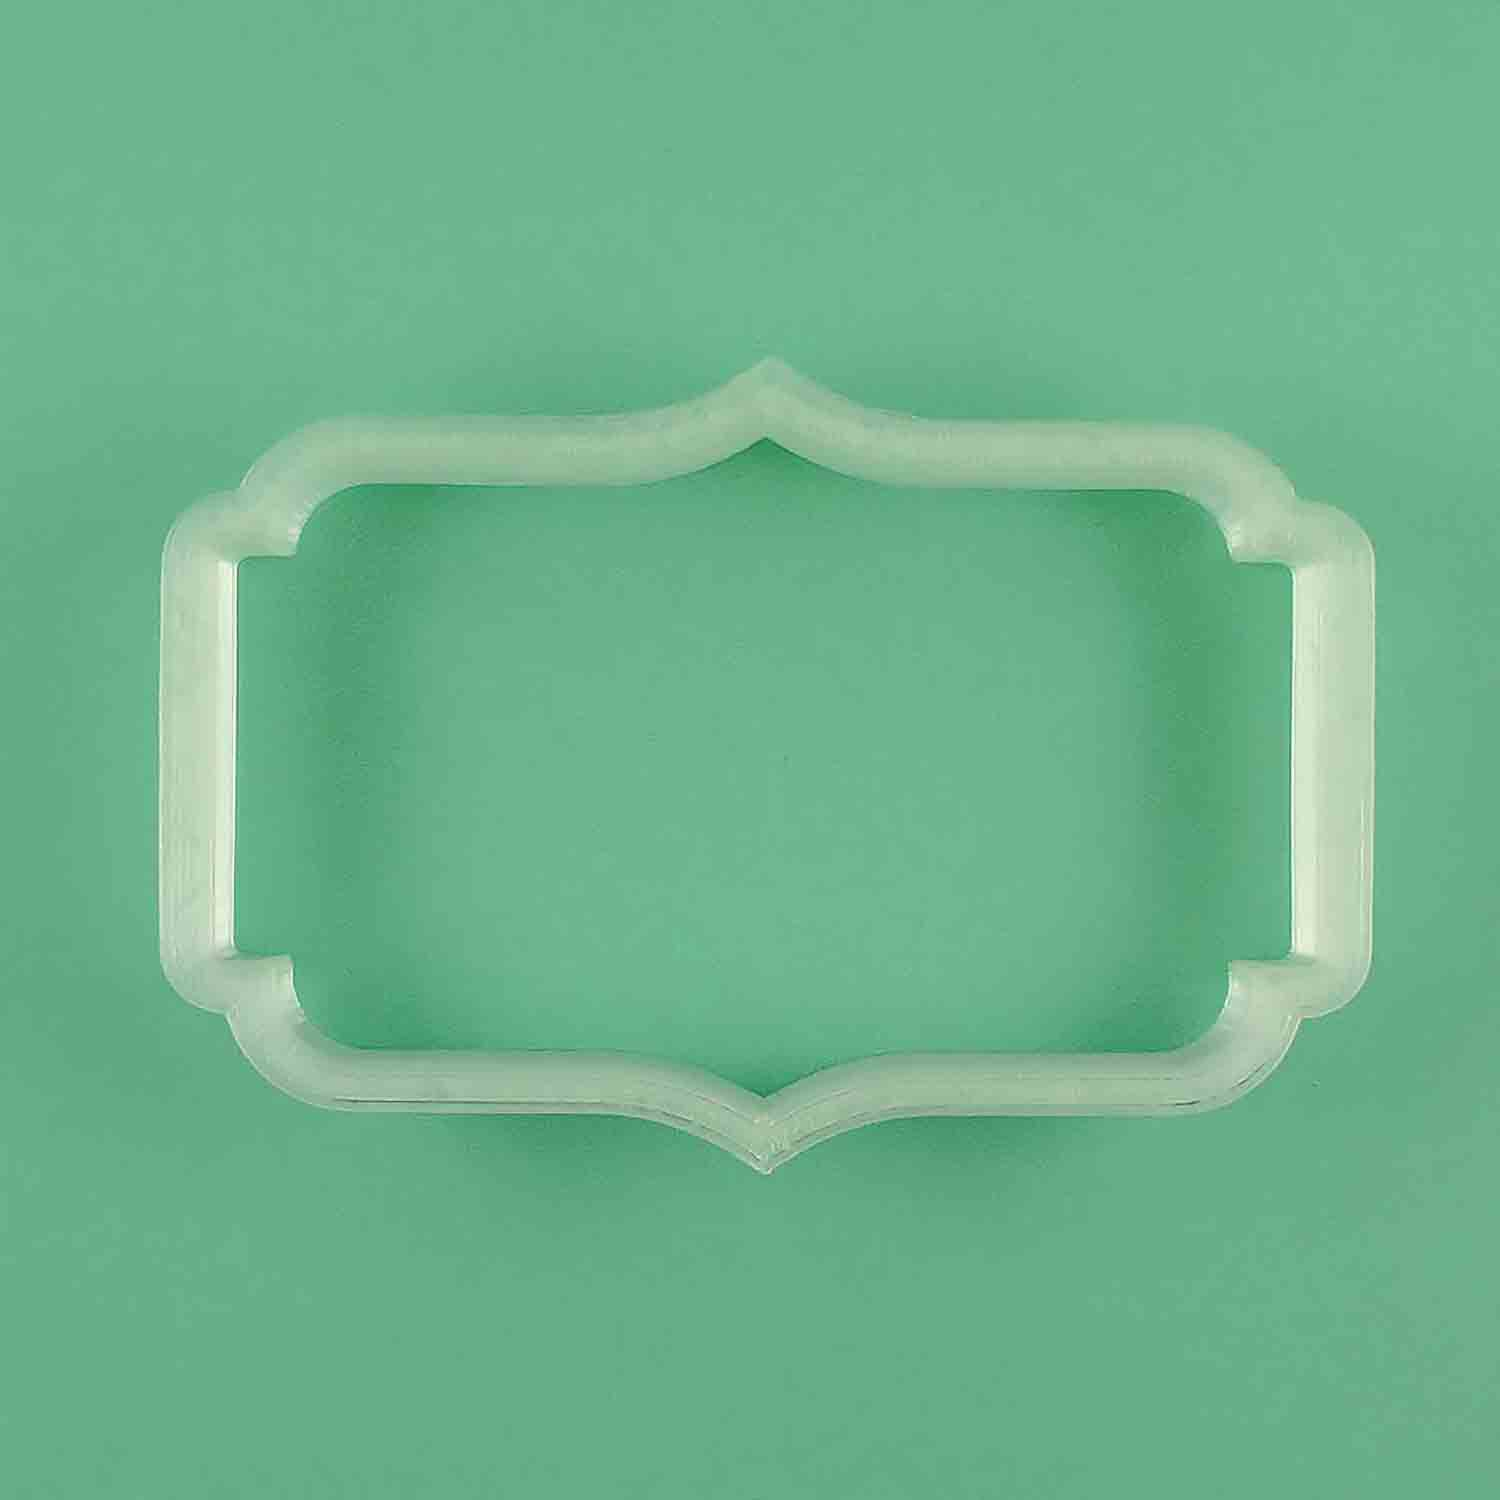 Rhode Island Plaque Cookie Cutter